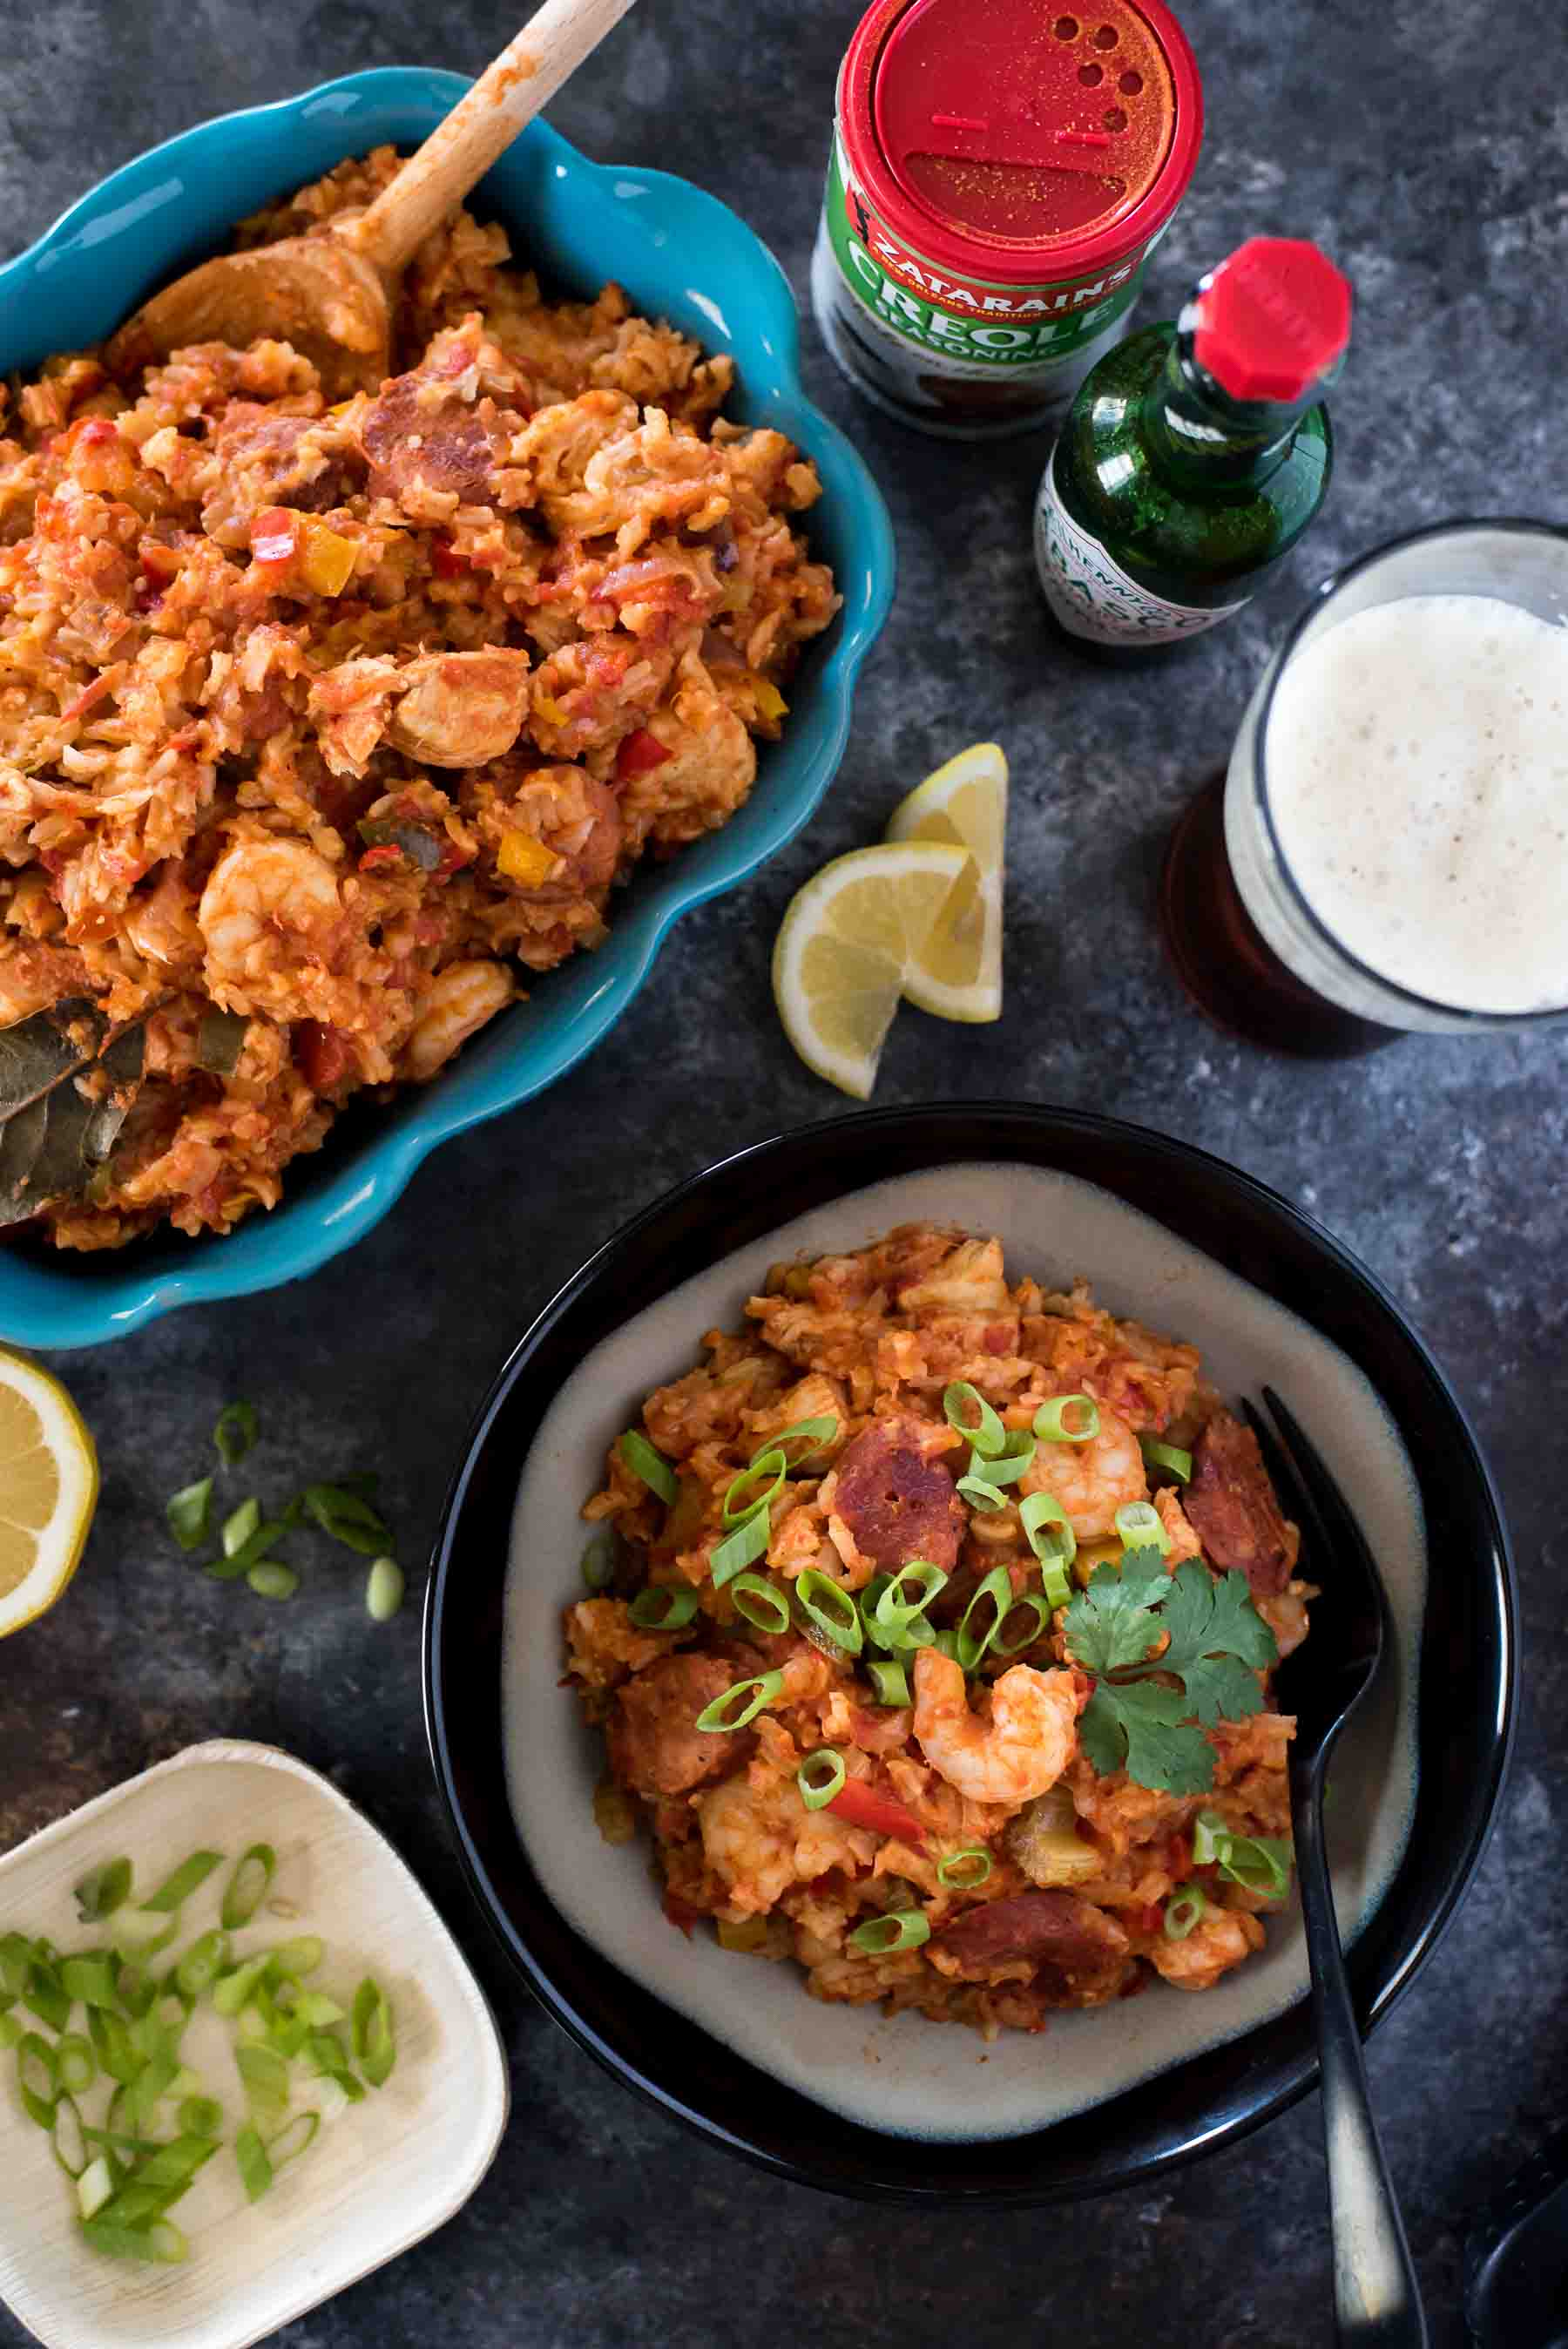 Mardi Gras isn't complete without some Creole food, so throw this Slow Cooker Jambalaya on while you hit up a parade or bake some beignets! Andouille sausage, chicken, and shrimp marry with Cajun-spiced rice and vegetables in this easy weekday or weekend meal.